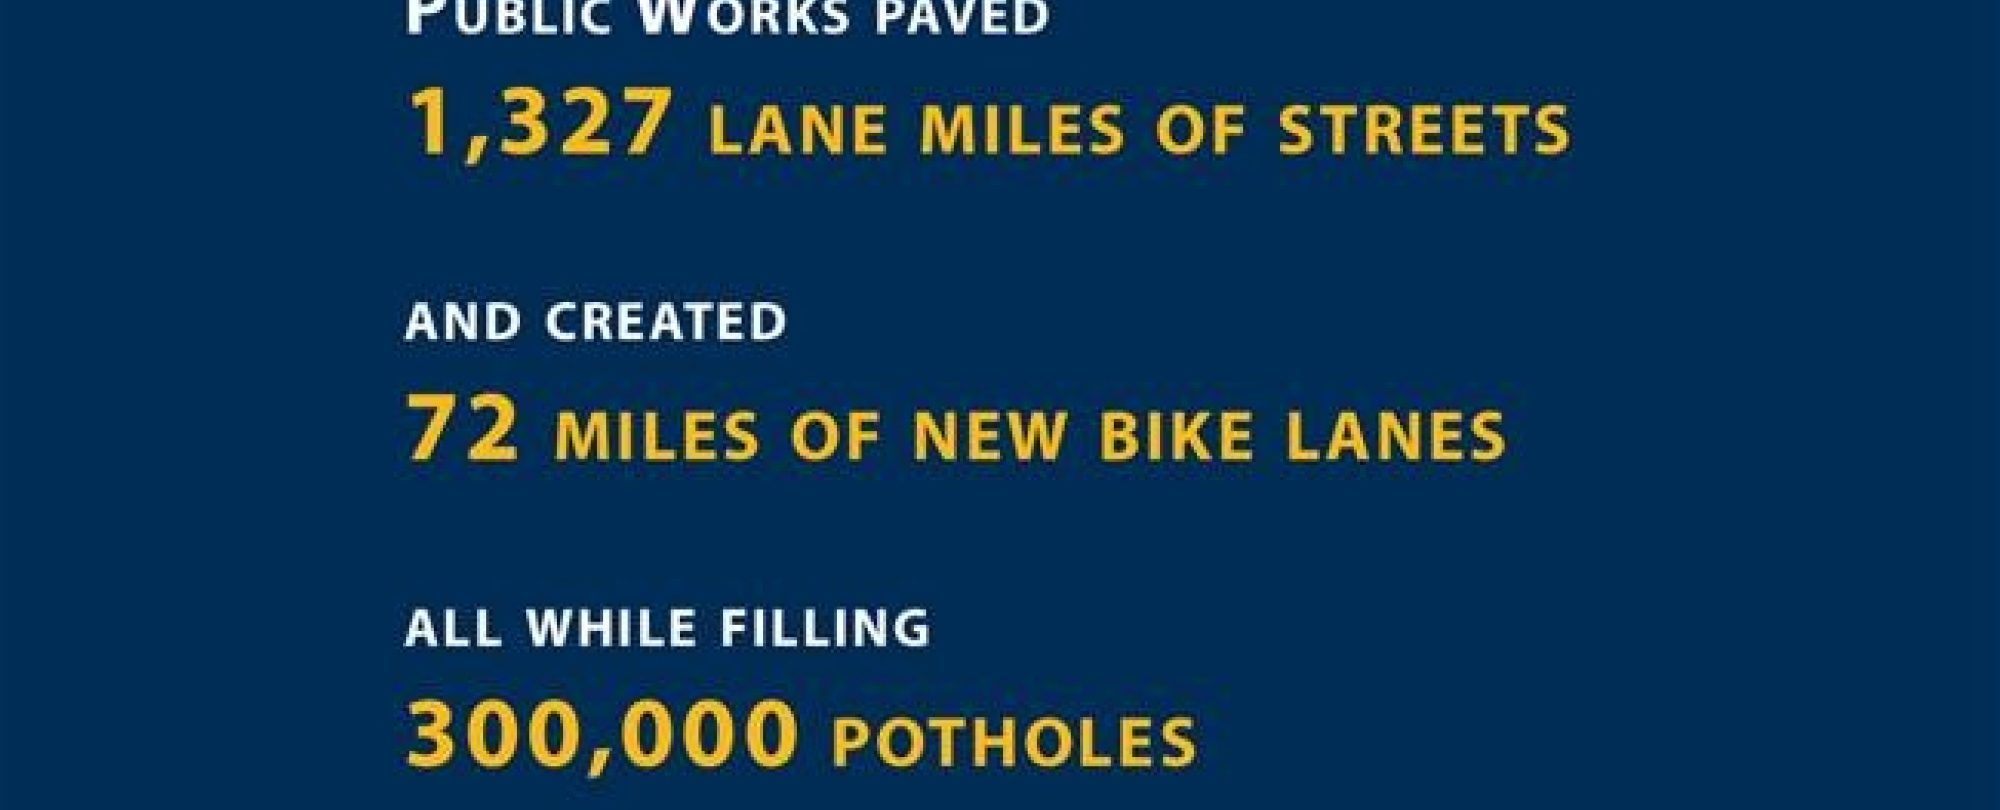 Public works paved 1,327 lane miles of streets and created 72 miles of new bike lanes, all while filling 300,000 potholes.